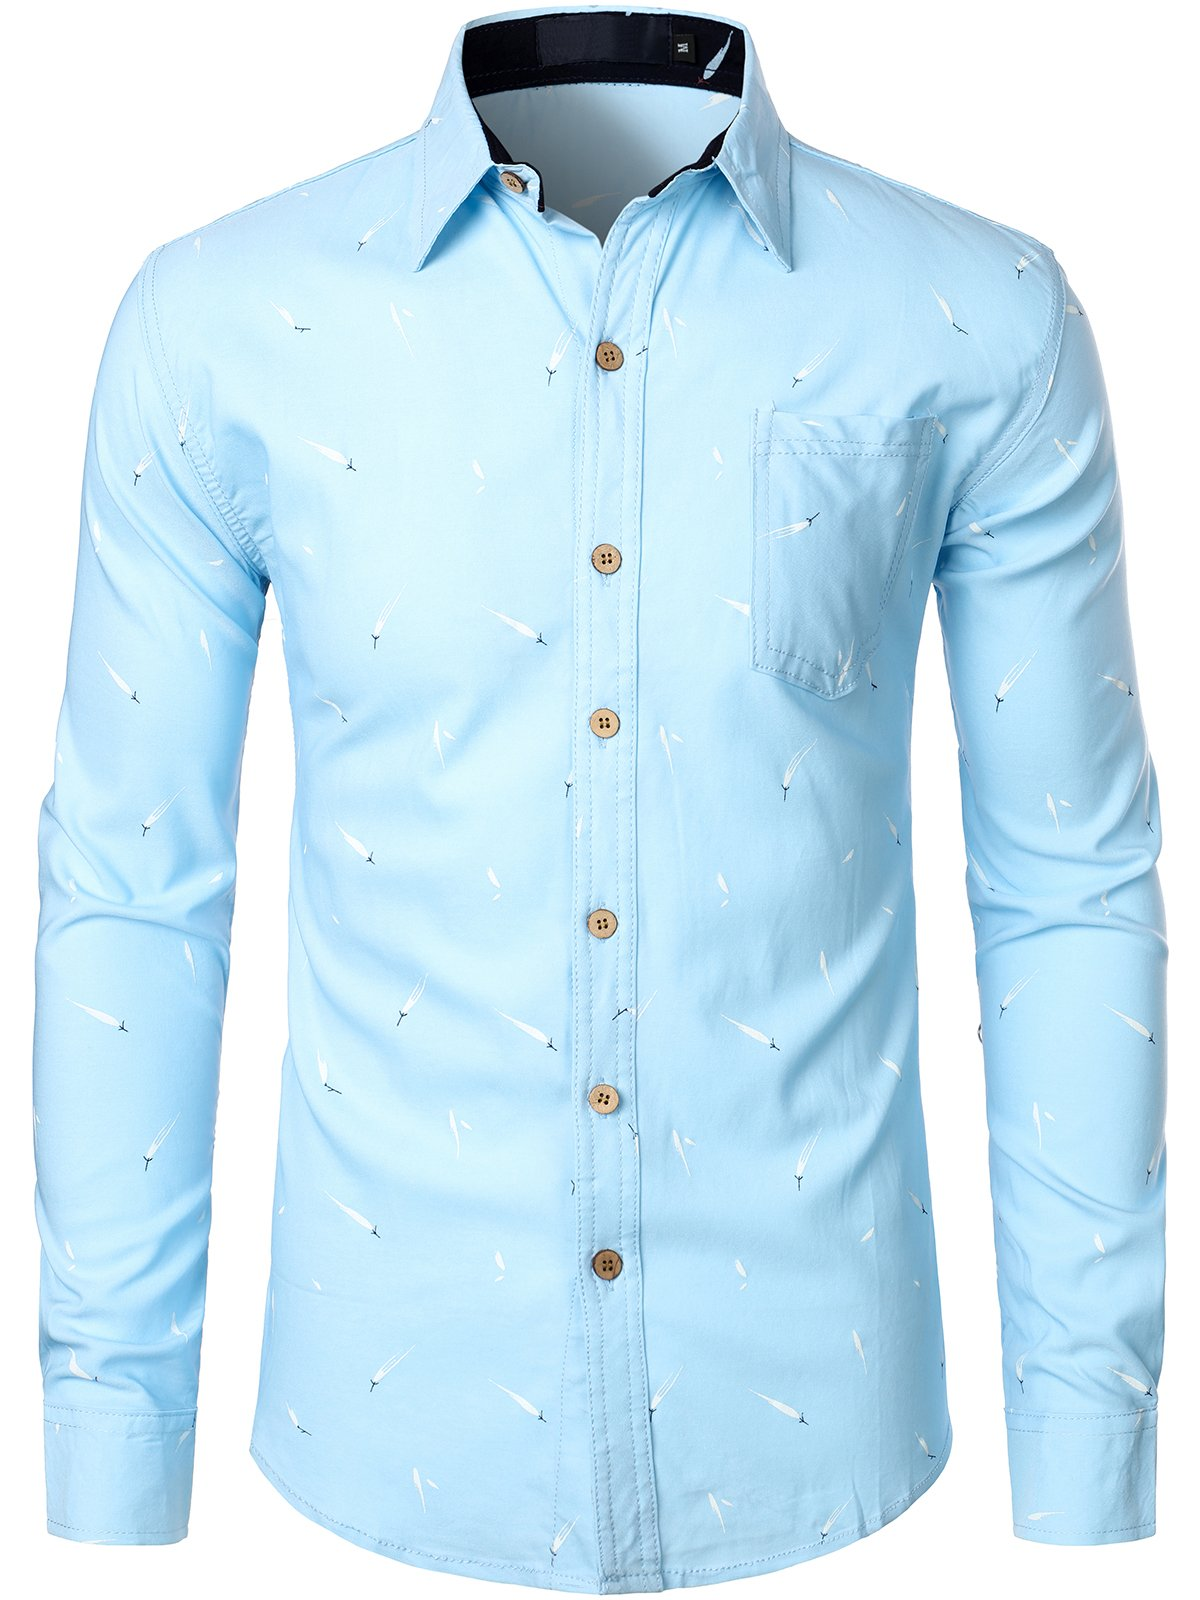 Men's Casual Cotton Button Up Regular Fit Long Sleeve Shirt